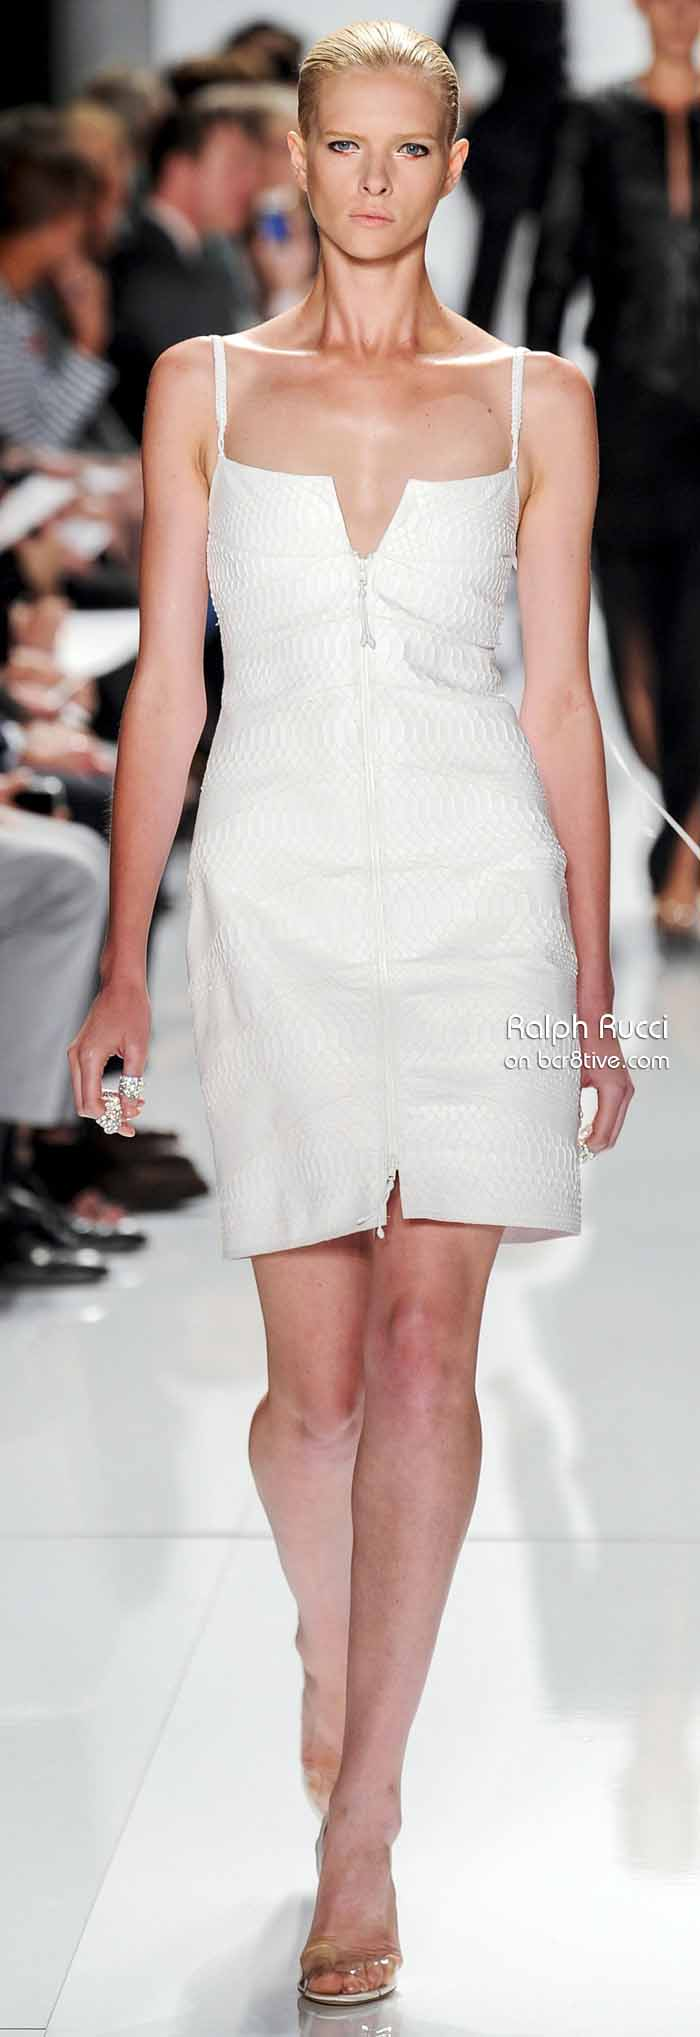 Ralph Rucci Spring 2014 #NYFW -  Embossed Leather Dress